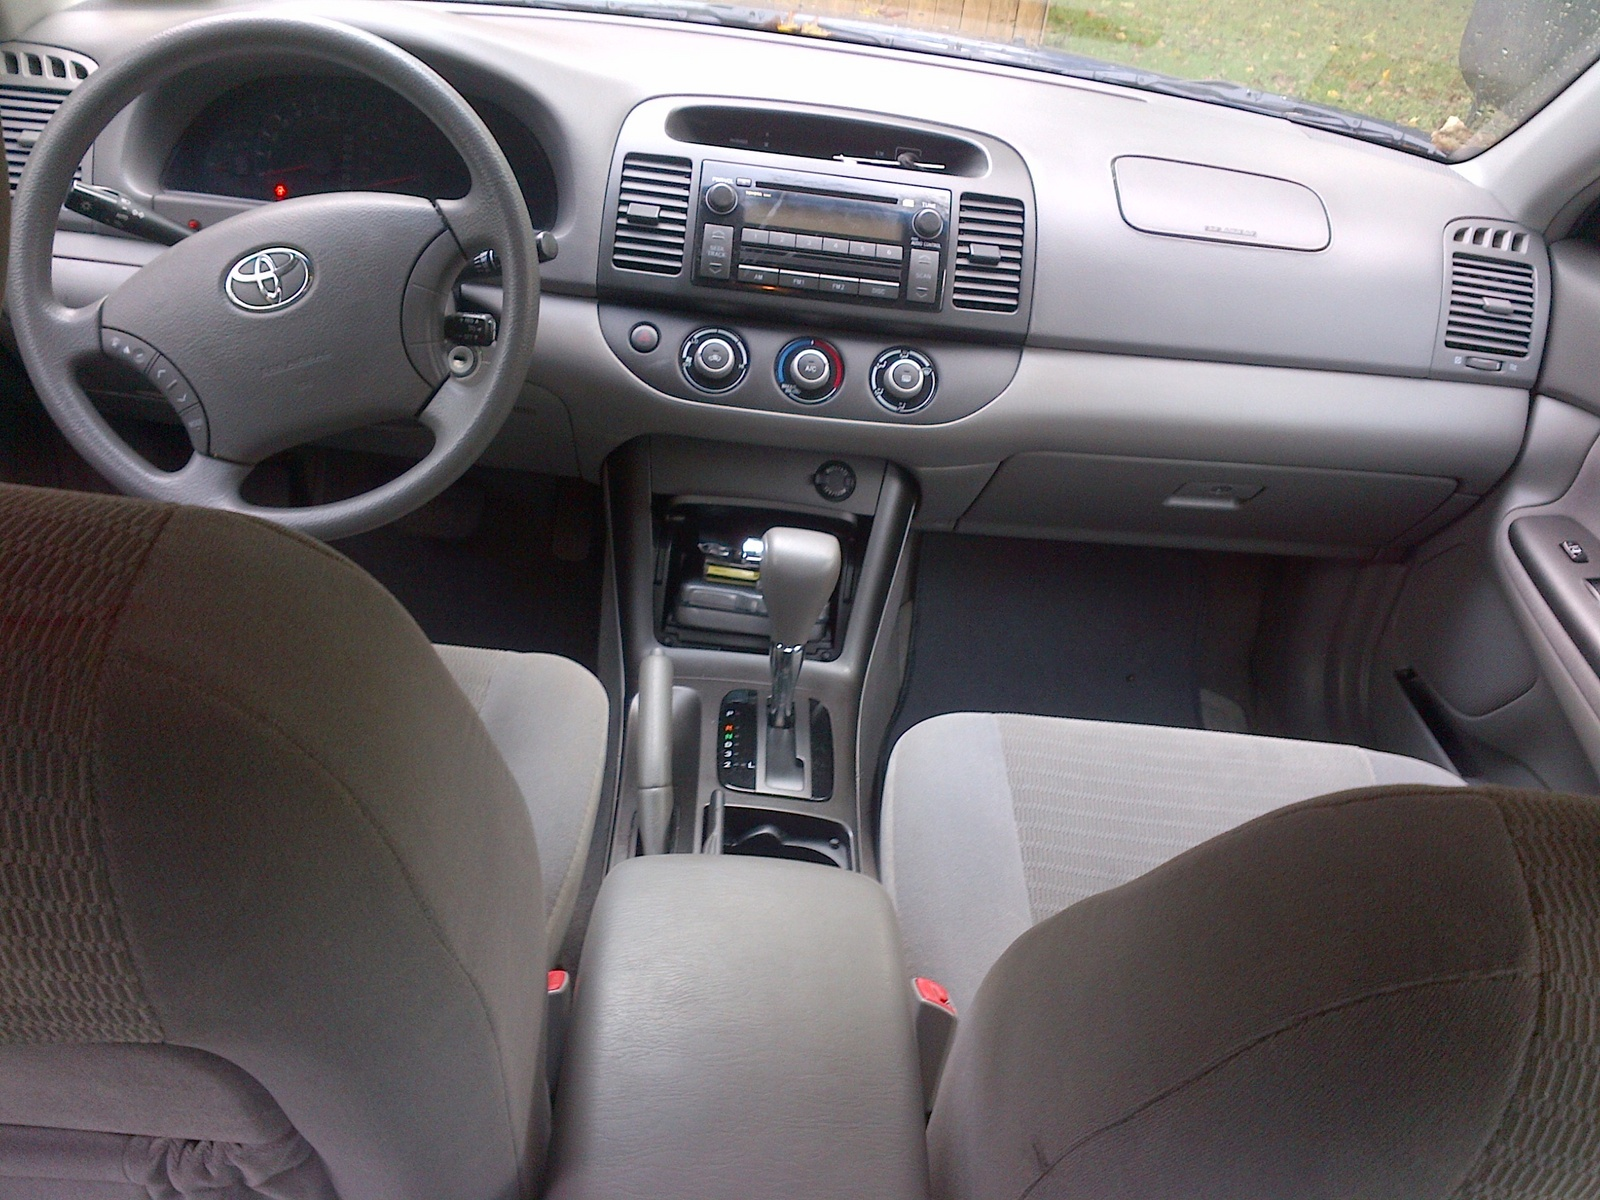 2005 toyota camry interior pictures cargurus. Black Bedroom Furniture Sets. Home Design Ideas